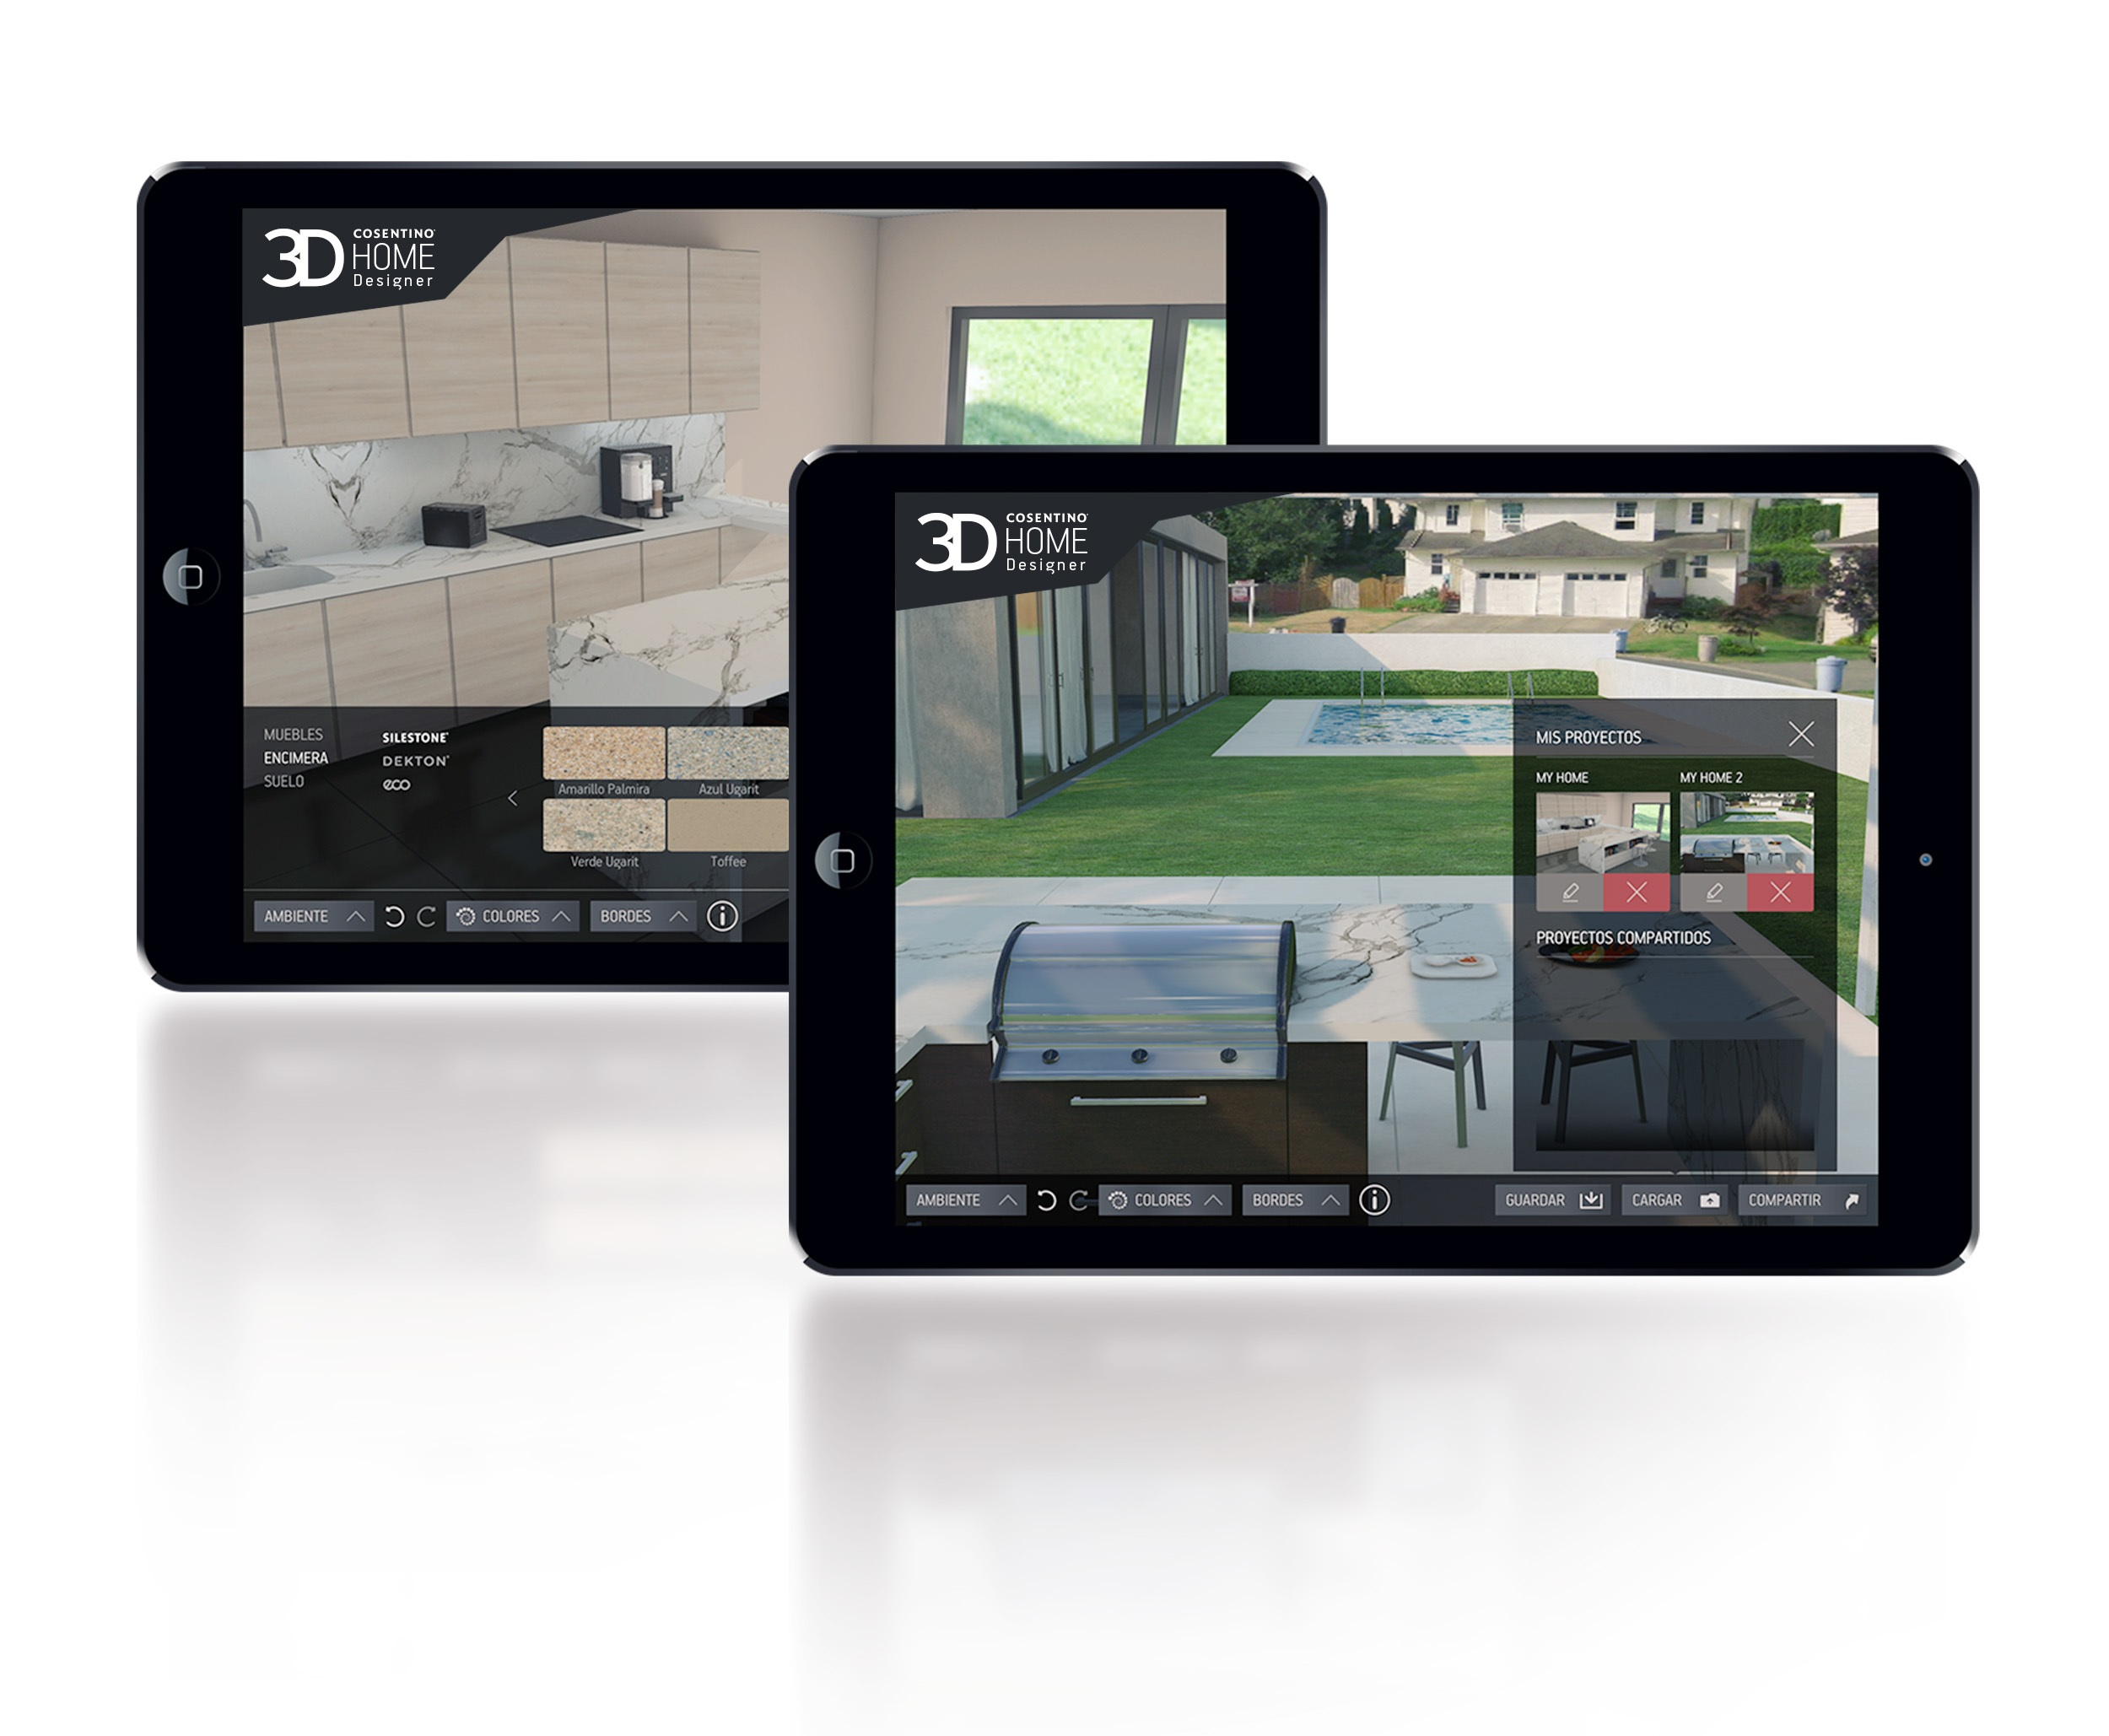 Cosentino Launches Two Online Design Tools Cosentino 3d Home And